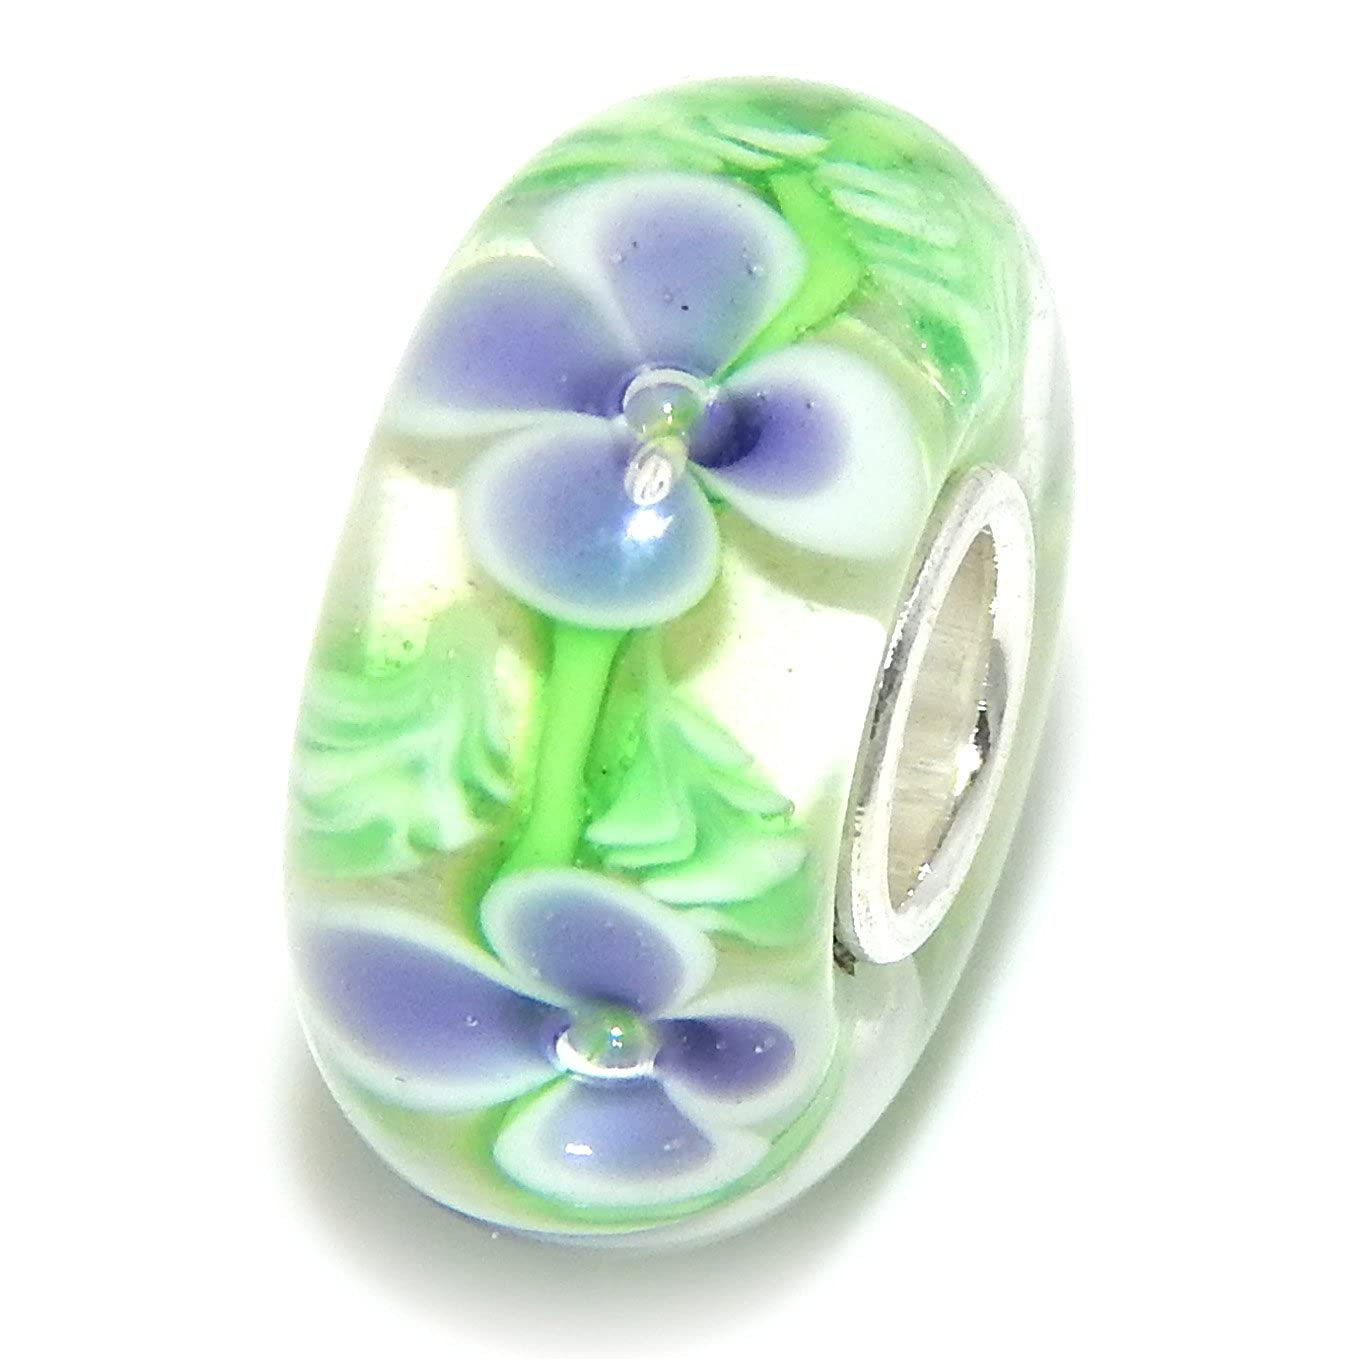 ICYROSE Solid 925 Sterling Silver Clear with Purple Flowers Glass Charm Bead